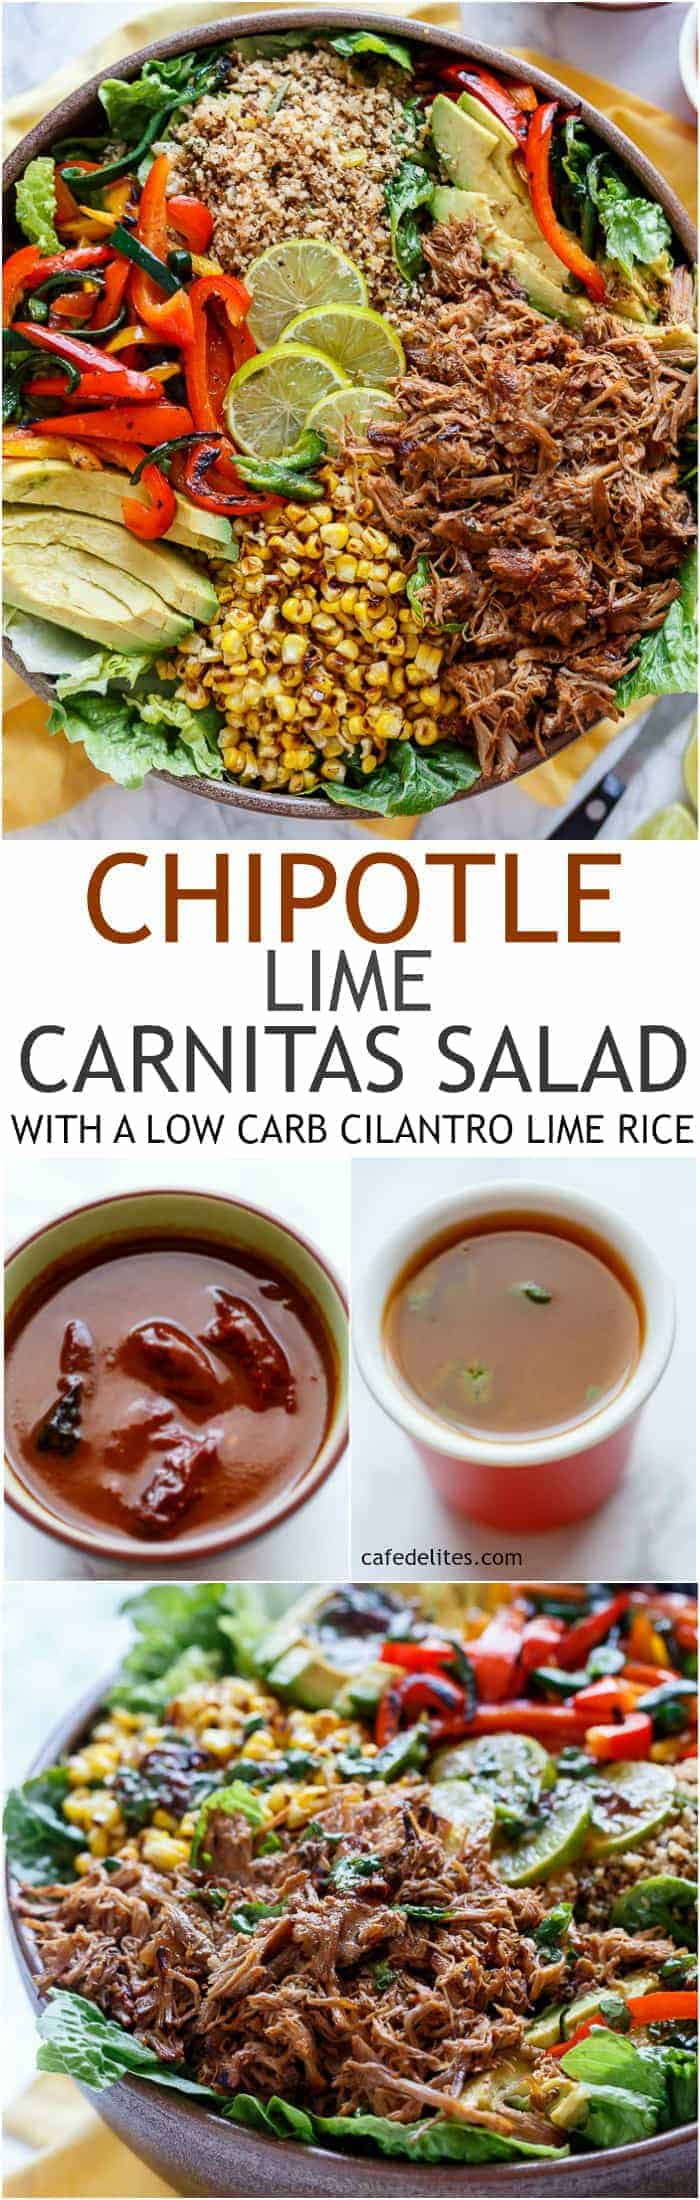 Chipotle Lime Carnitas Salad | Crispy Carnitas in a salad drizzled with an incredible Chipotle Lime Dressing and a low carb Cilantro Lime Rice! | https://cafedelites.com